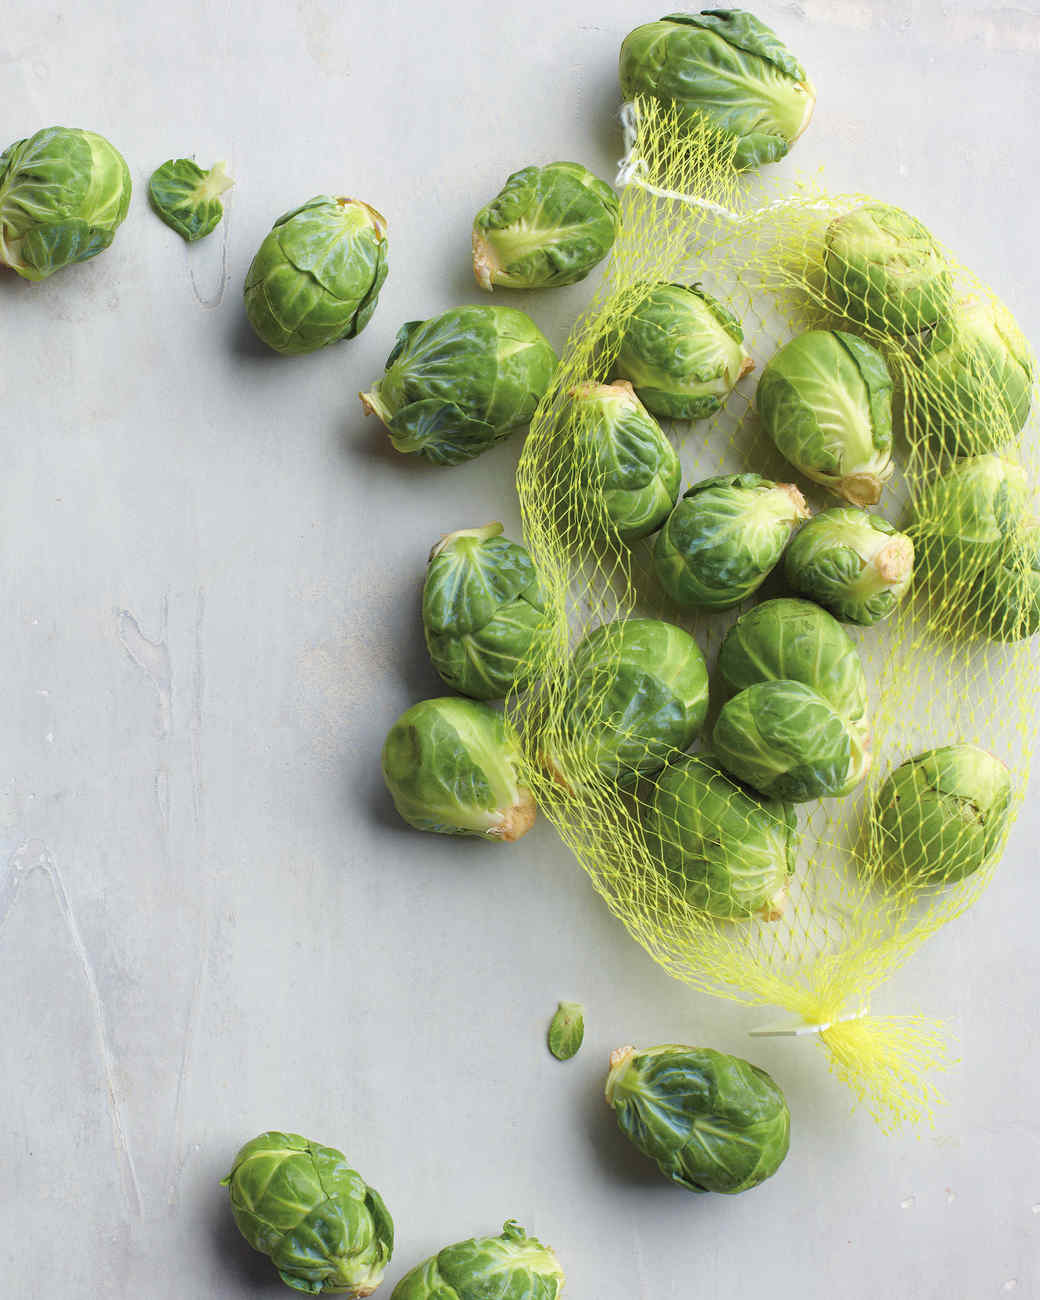 25 Brussels Sprouts Recipes Because There Are So Many